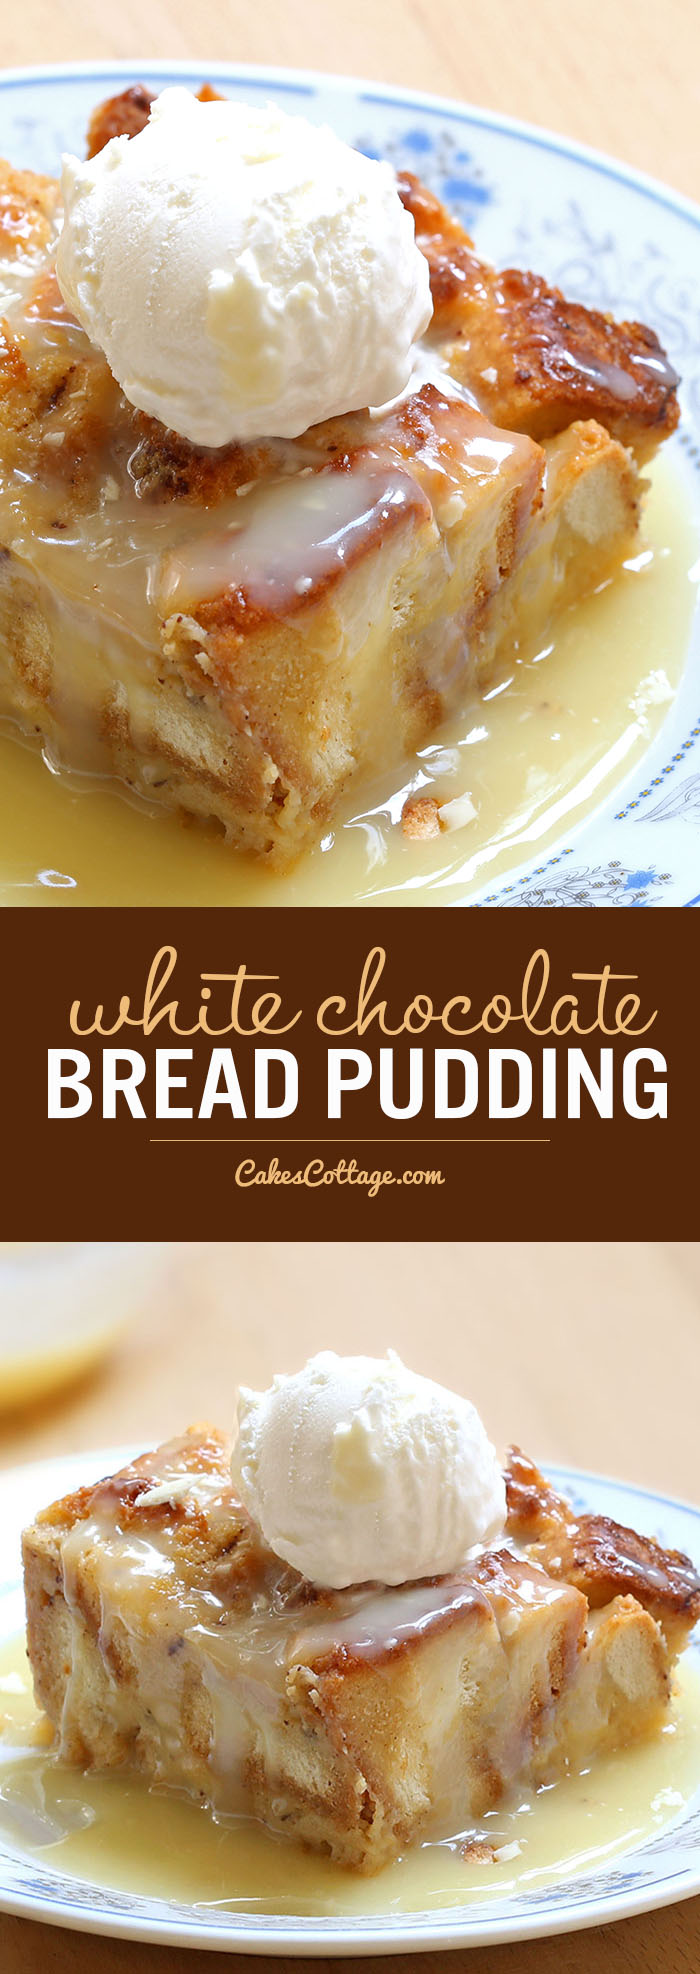 Rich, warm and comforting<strong> white chocolate pudding</strong>, served with decadent semi-sweet white chocolate sauce, represents everything I love about the holidays.